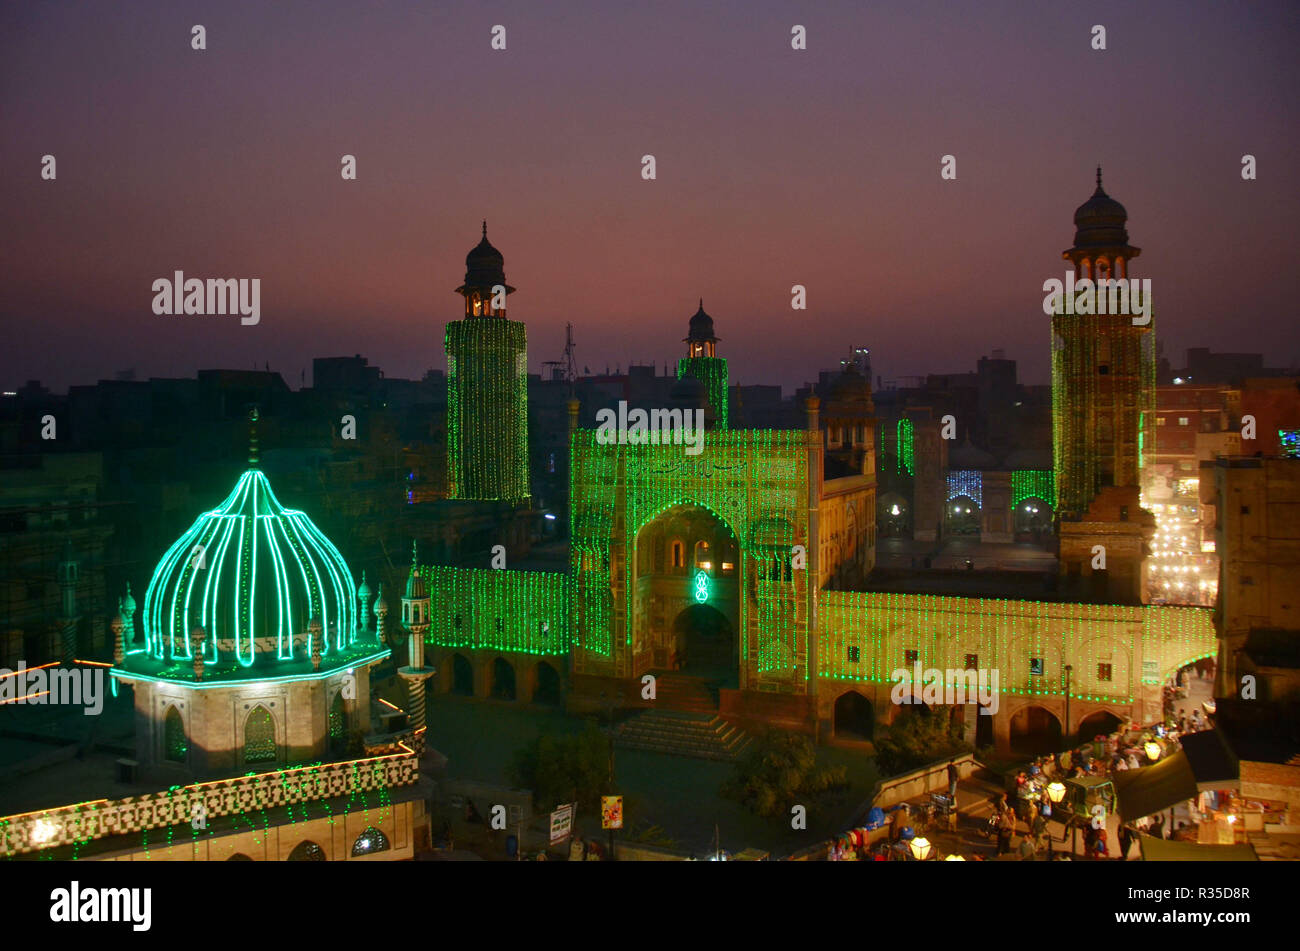 Rabi Ul Awwal Stock Photos & Rabi Ul Awwal Stock Images - Alamy